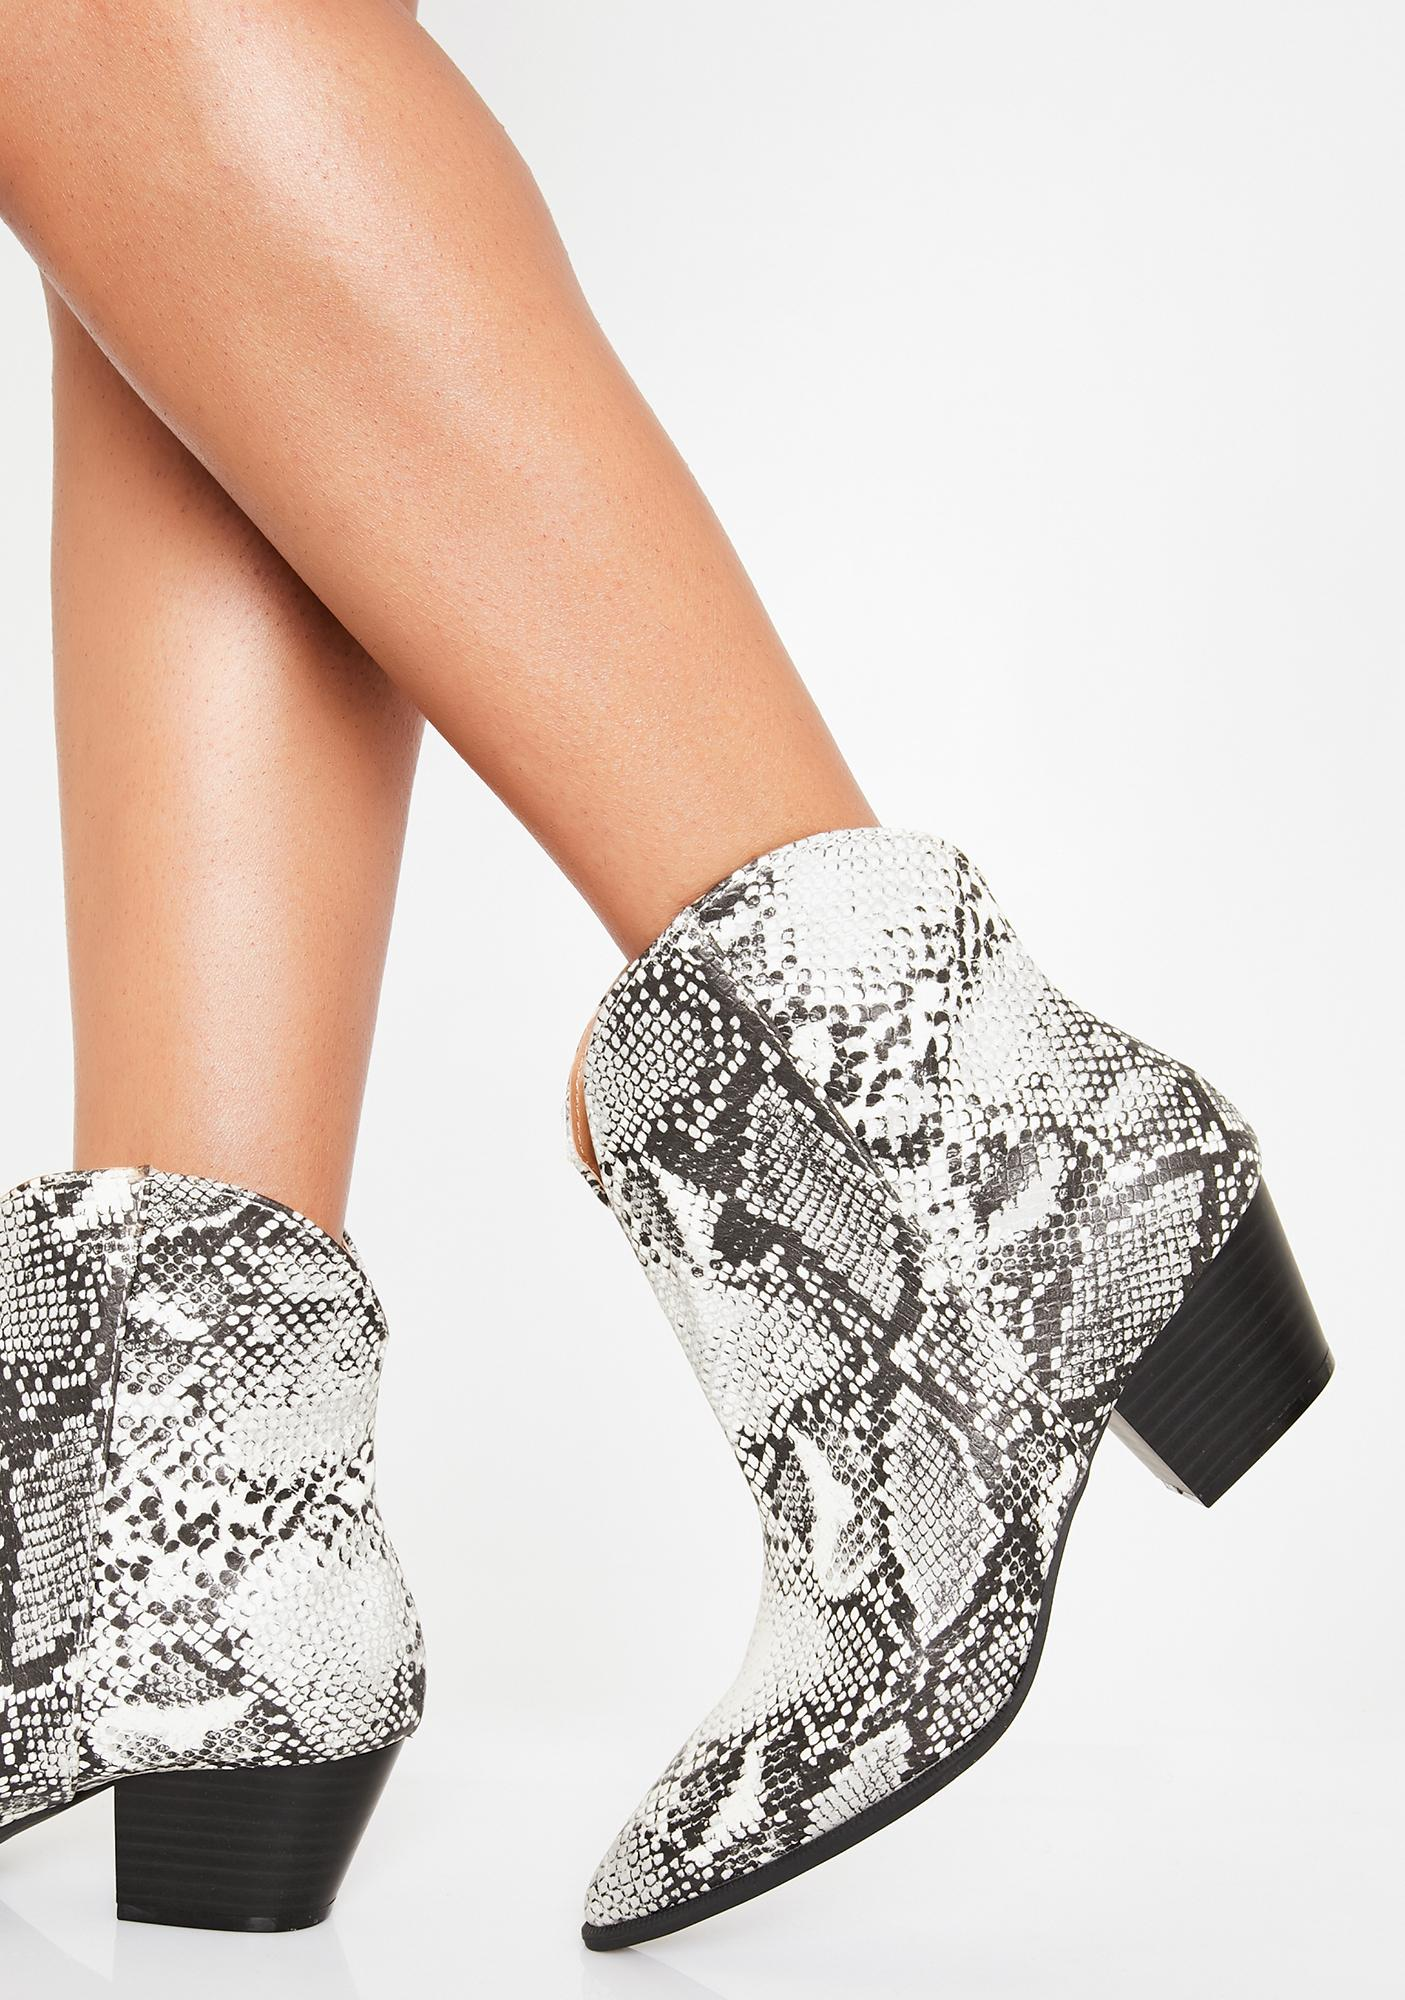 Come Slither Ankle Boots